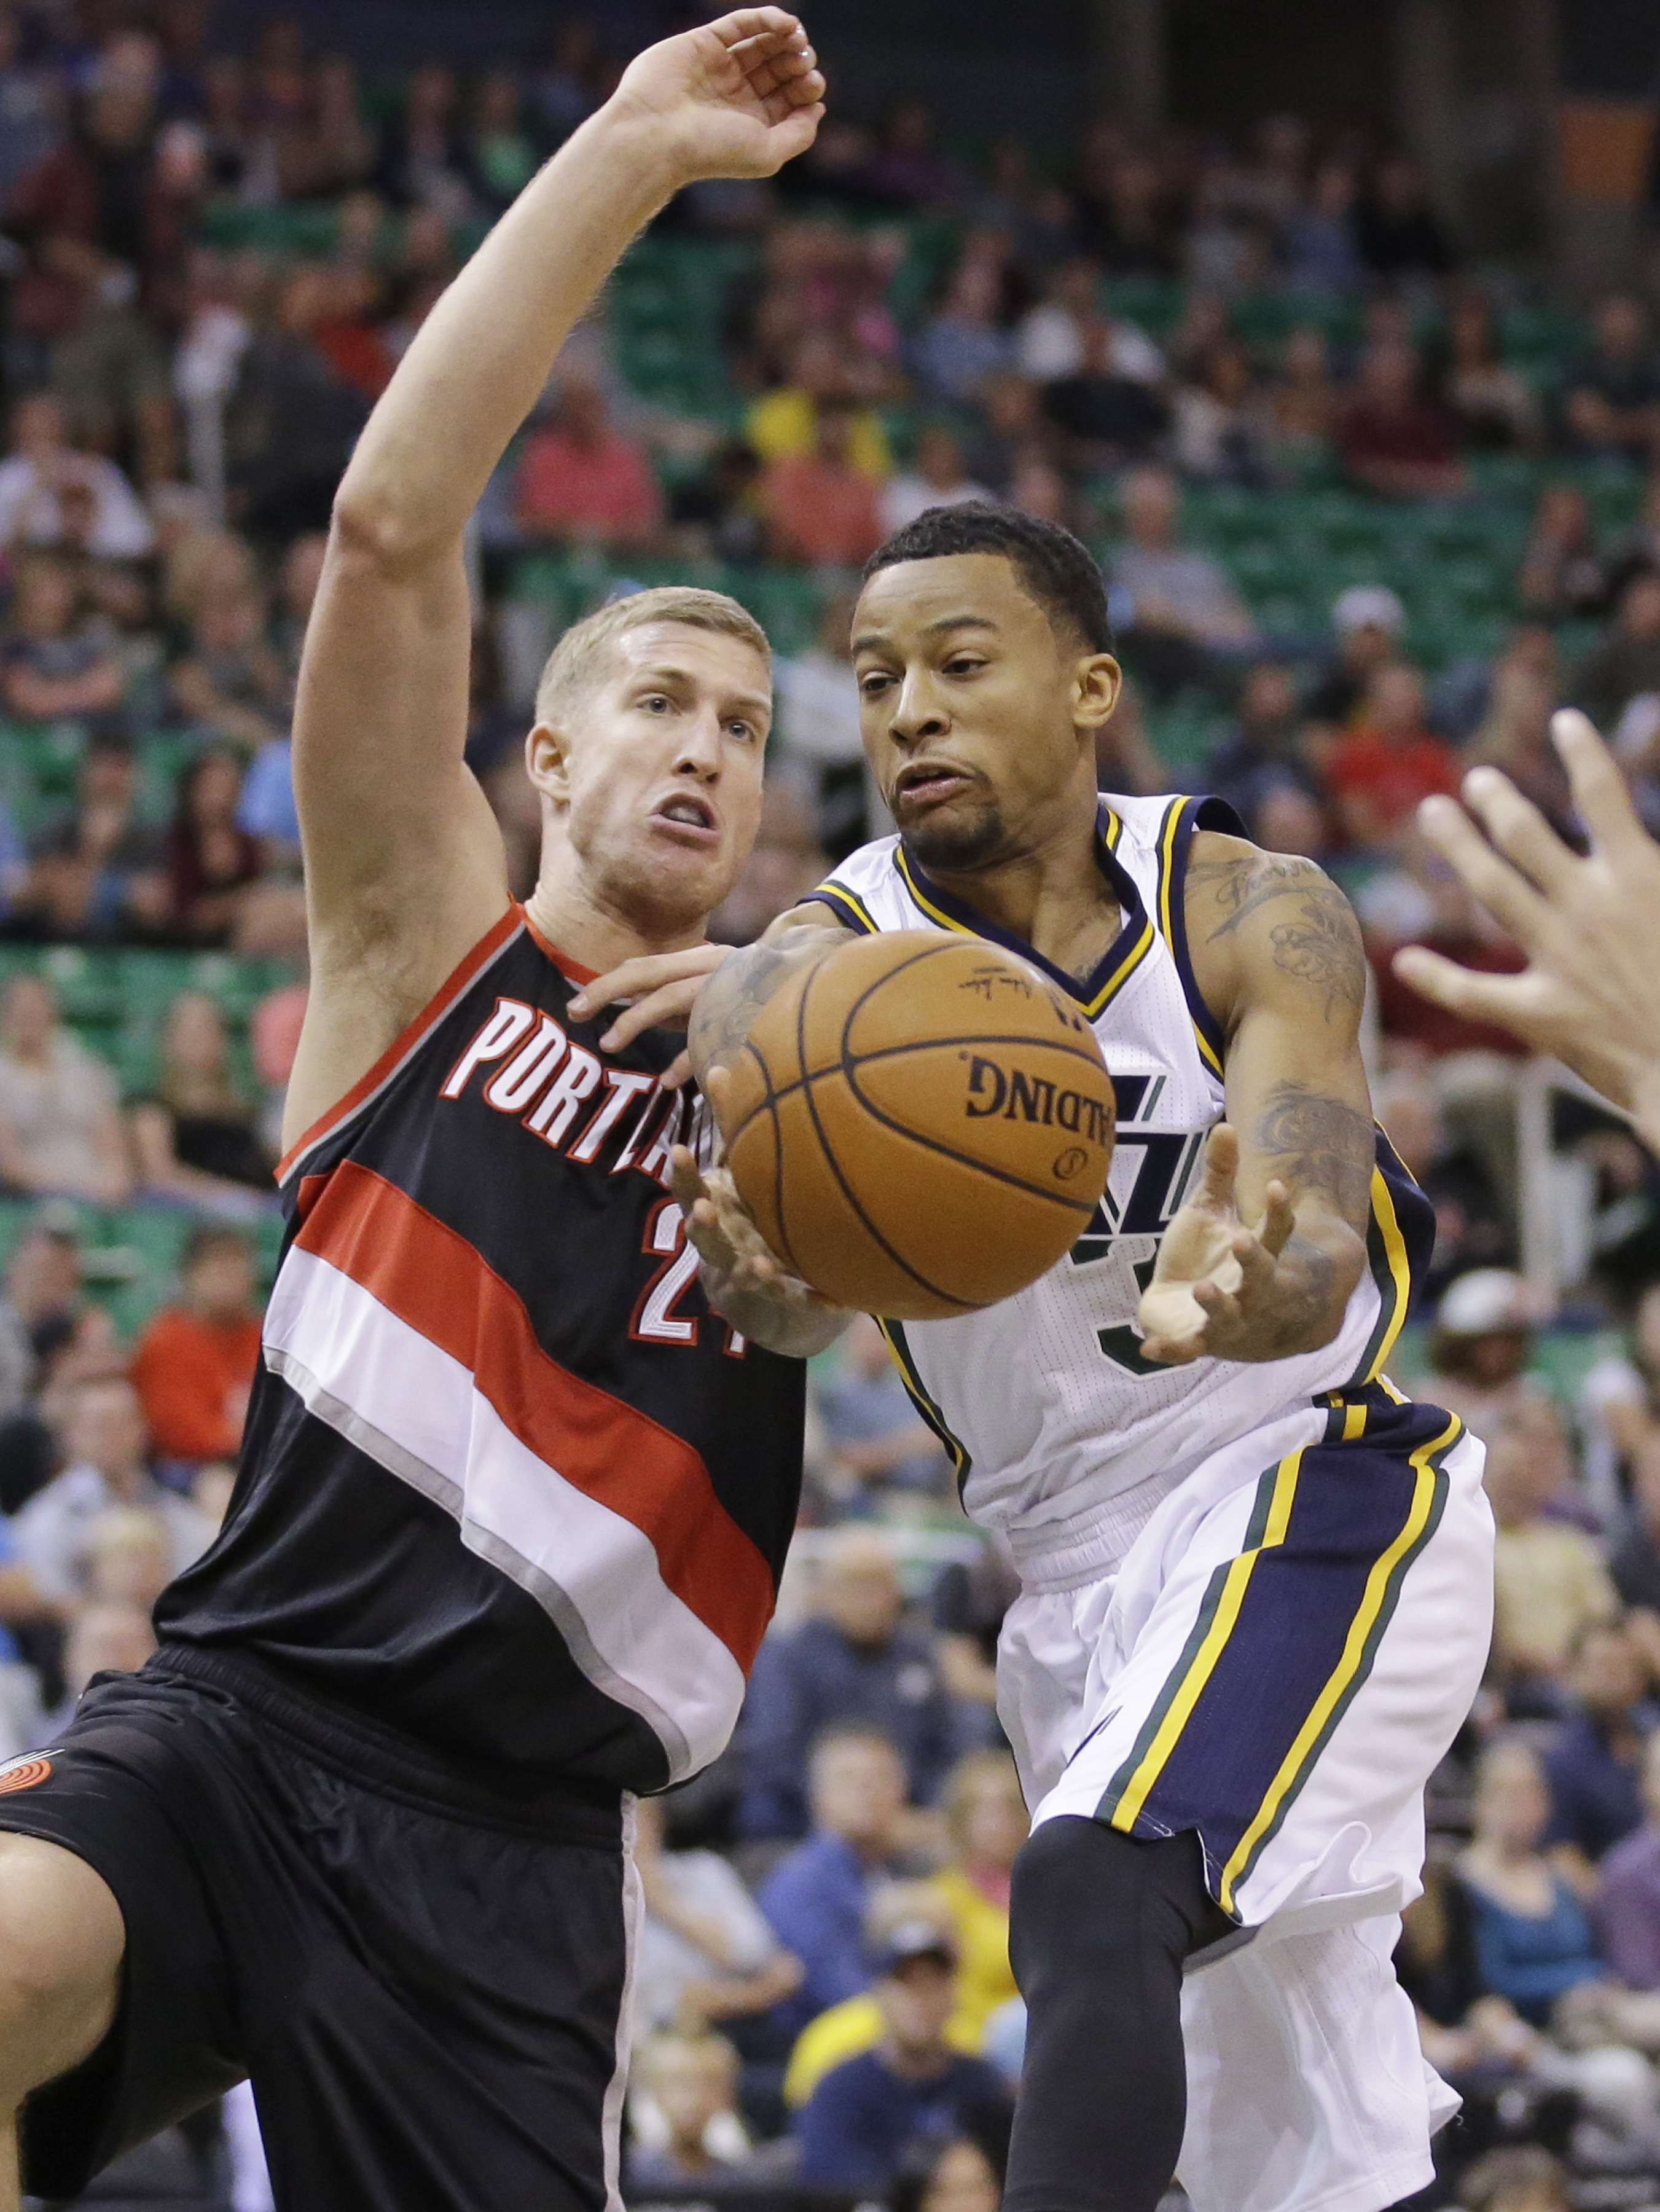 Utah Jazz guard Trey Burke, right, goes to the basket as Portland Trail Blazers forward Mason Plumlee (24) defends during the first quarter of an NBA preseason basketball game Monday, Oct. 12, 2015, in Salt Lake City. (AP Photo/Rick Bowmer)